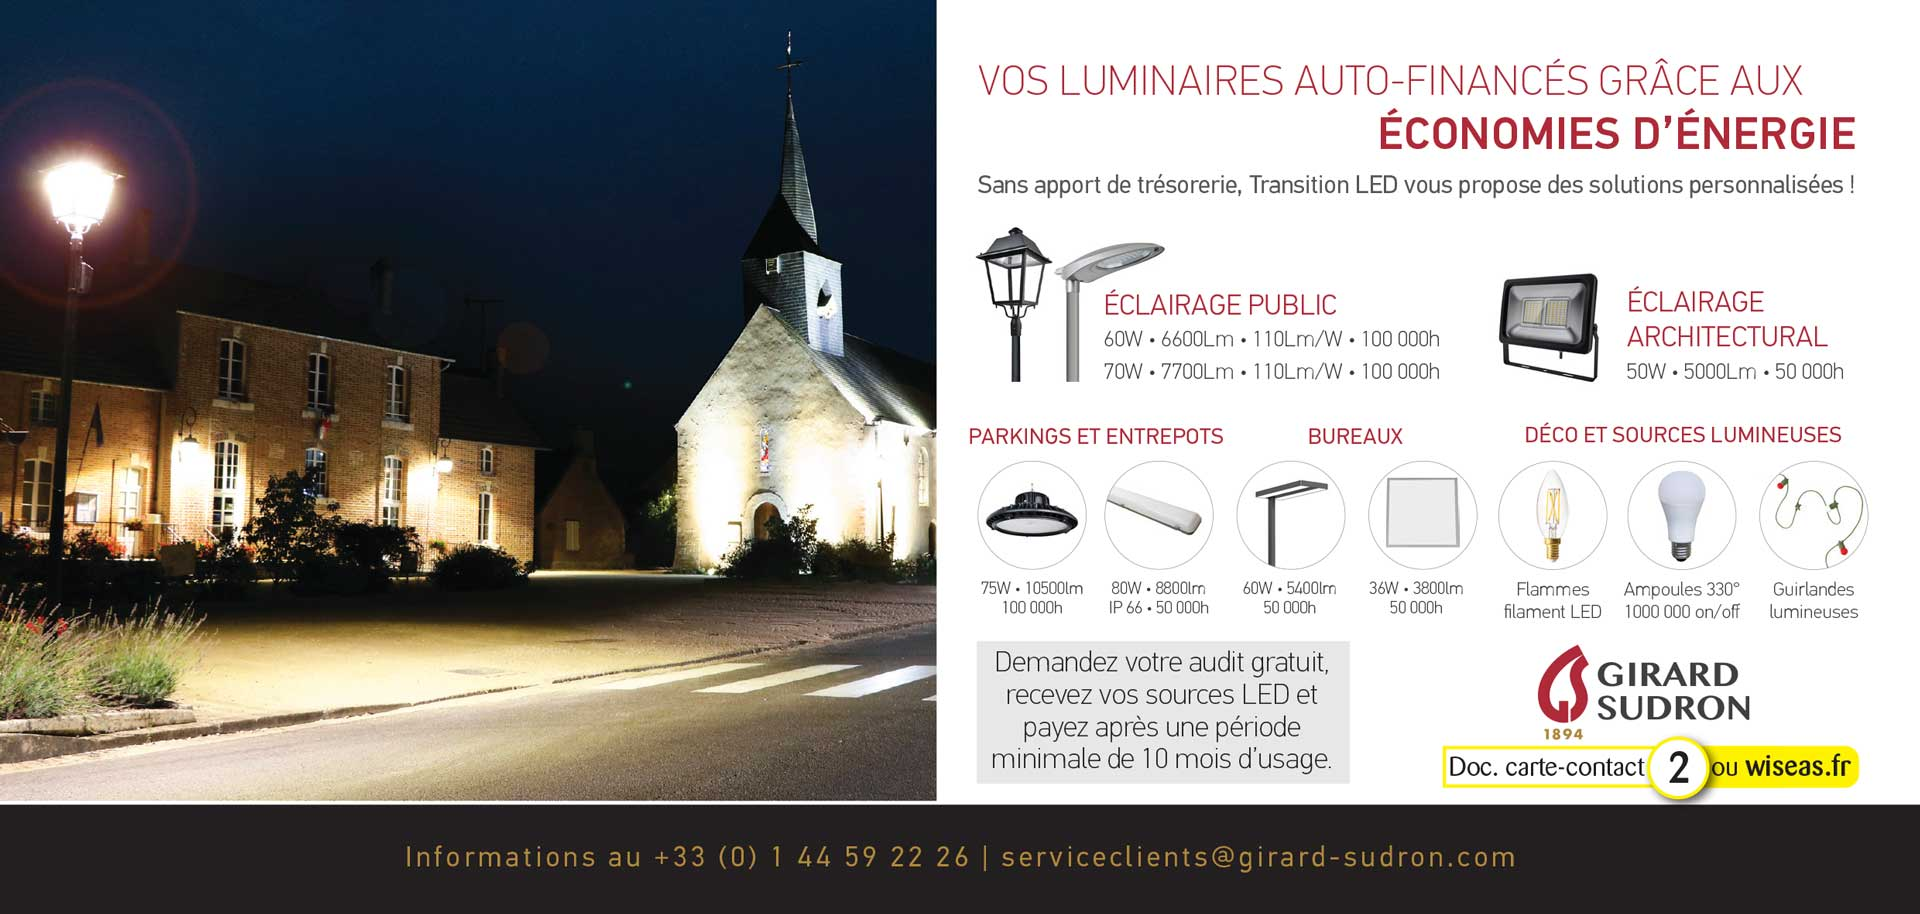 Transition LED, vos luminaires auto-financés